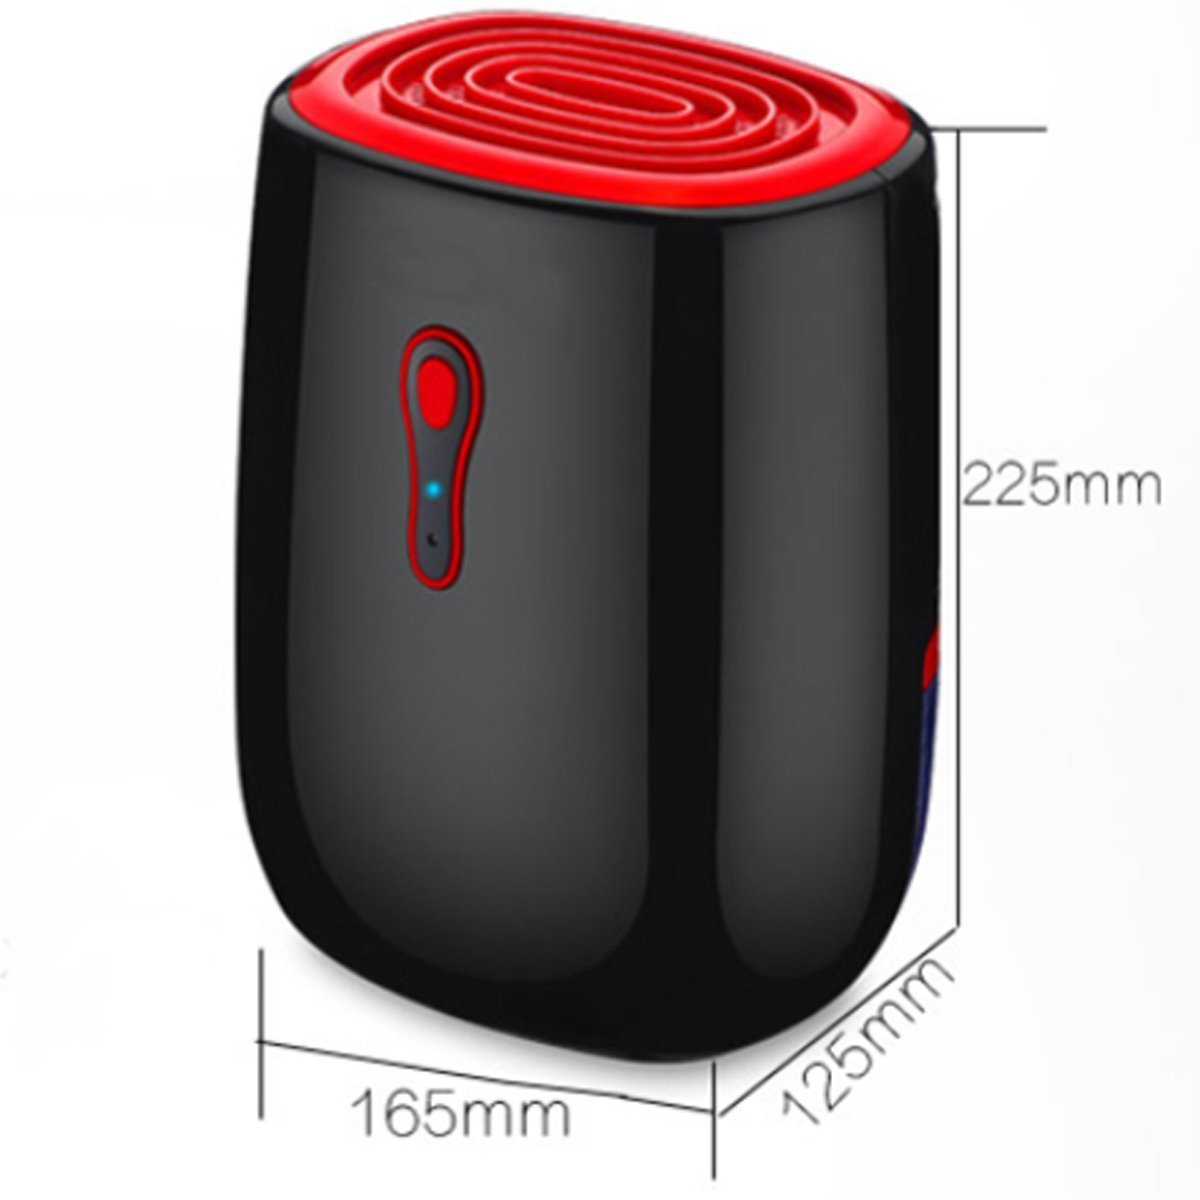 Portable Dehumidifier 550ML Electric Mini Dehumidifier for Closets, Bathrooms, Boats, Kitchens and Other Small Rooms & Spaces